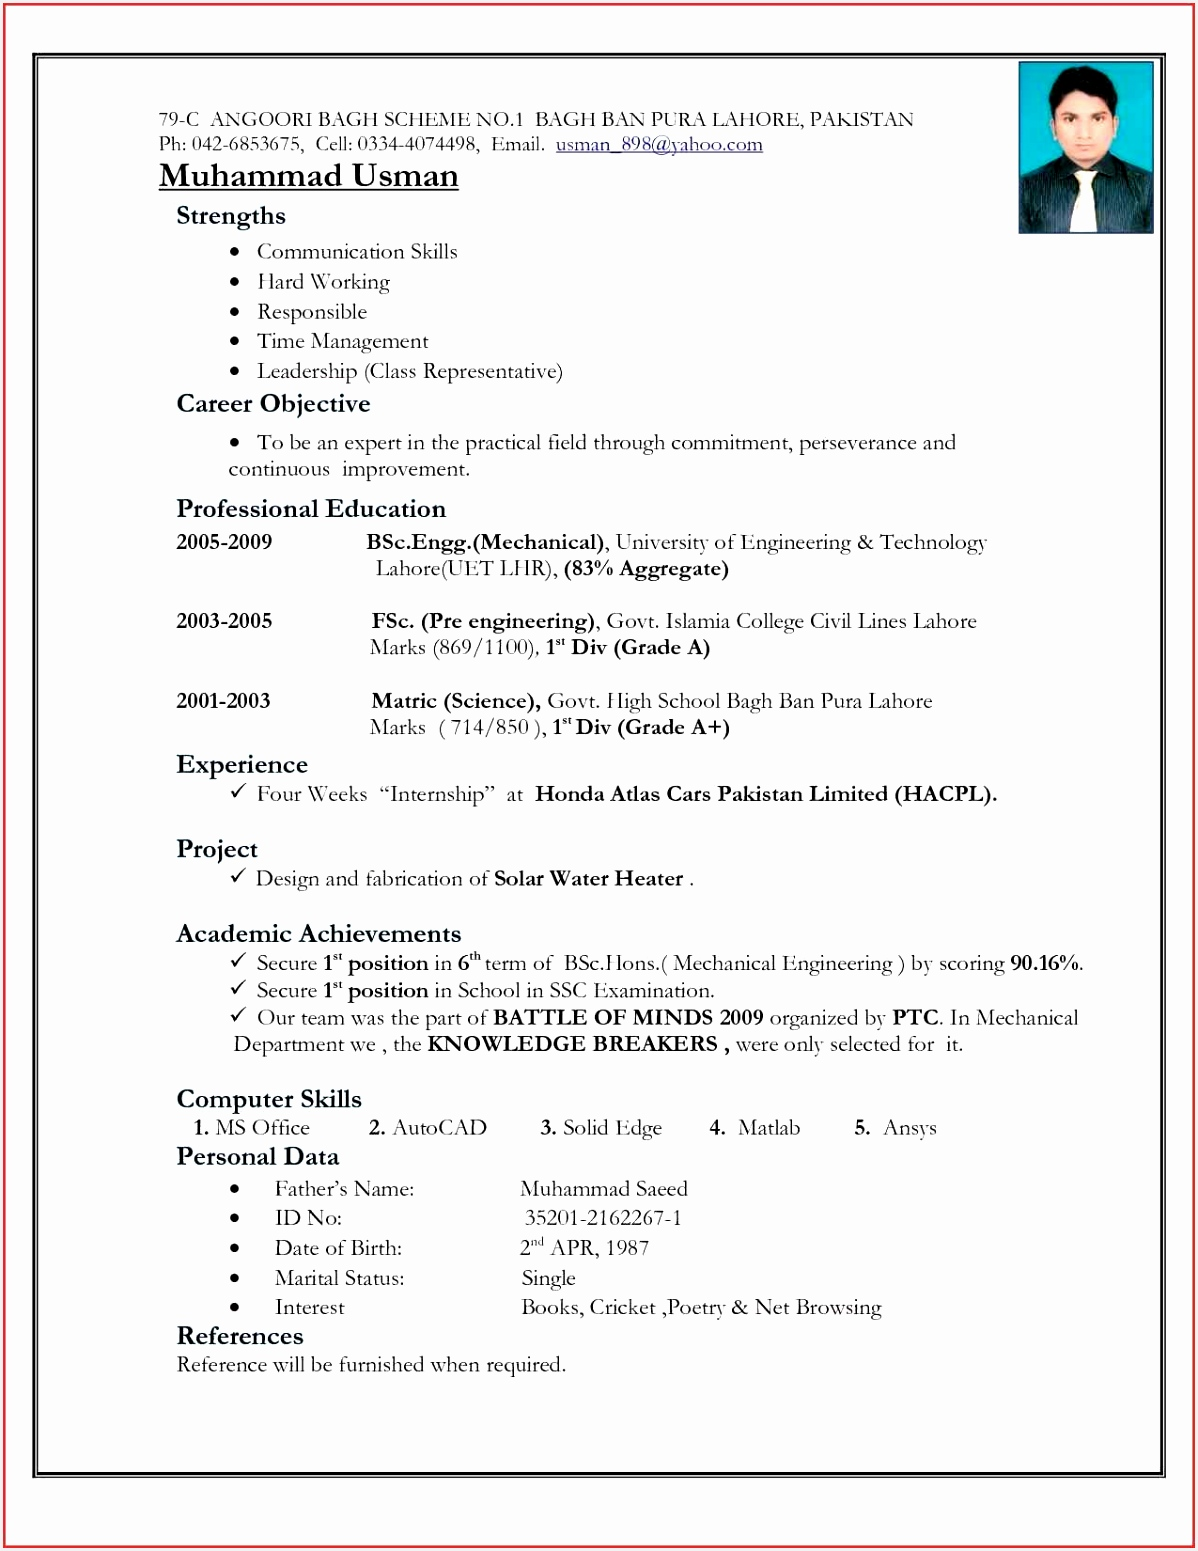 Resumes format for Freshers N8daq Luxury Good Resume formats Best Of Best Resume format for Freshers Free Of Resumes format for Freshers C6sag Lovely Resume for A Waitress Design Resume Samples New Waitress Resume 0d